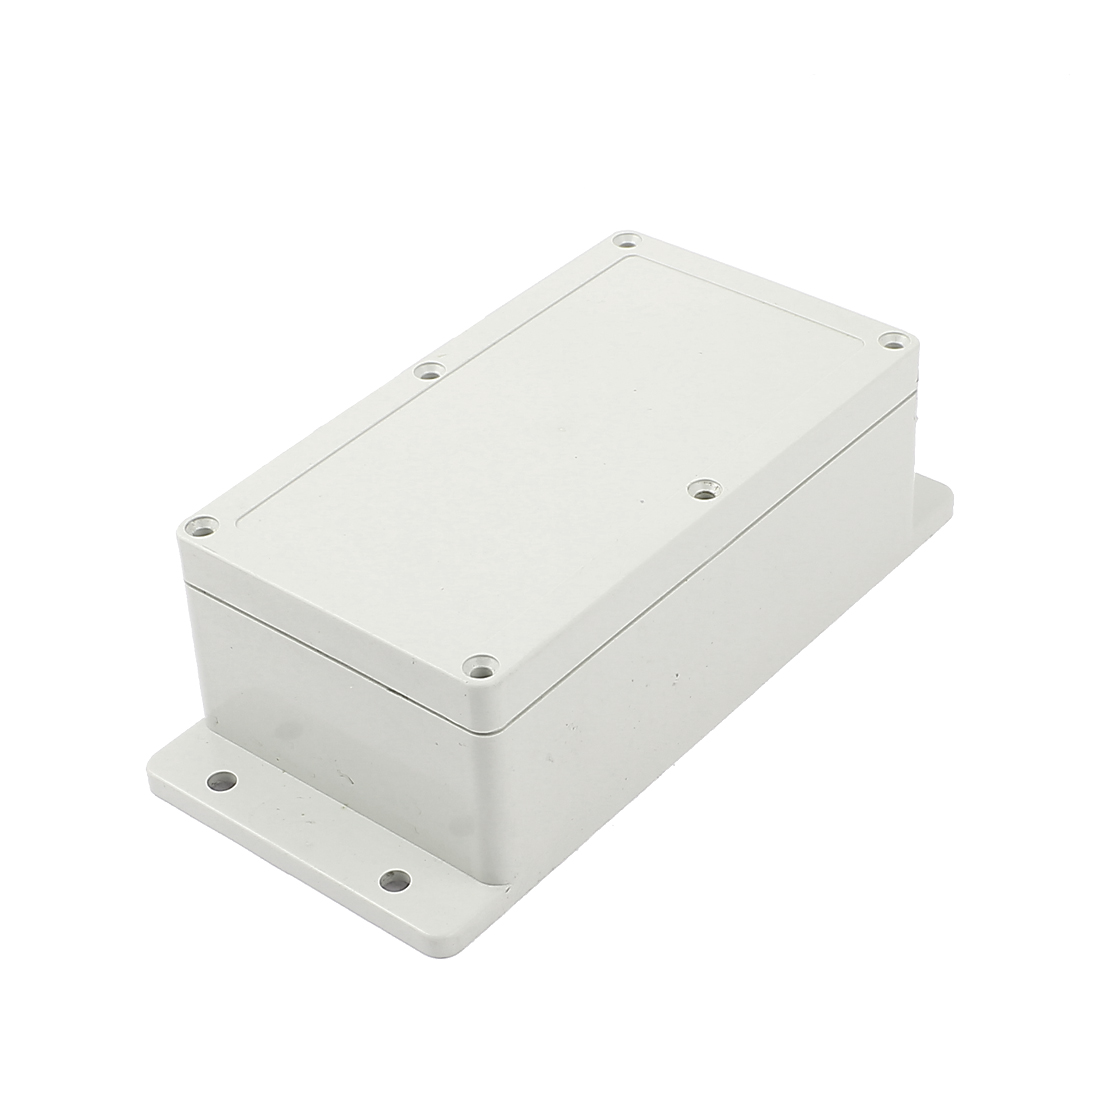 Plastic Project Power Protector Case Junction Box 158x90x60mm